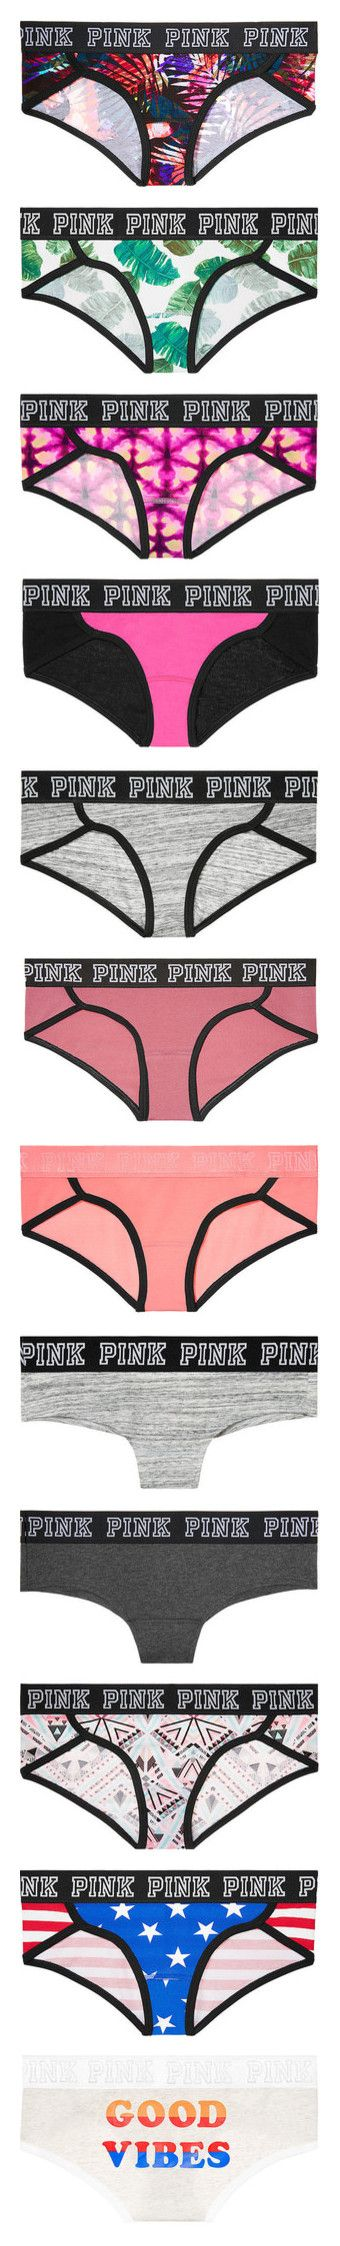 """VS Panties"" by aniahrhichkhidd ❤ liked on Polyvore featuring intimates, panties, victoria secret boyshorts, victoria's secret, boyshort bikini, boy shorts bikini, pink boyshorts, hipster panty, floral and pink panty"